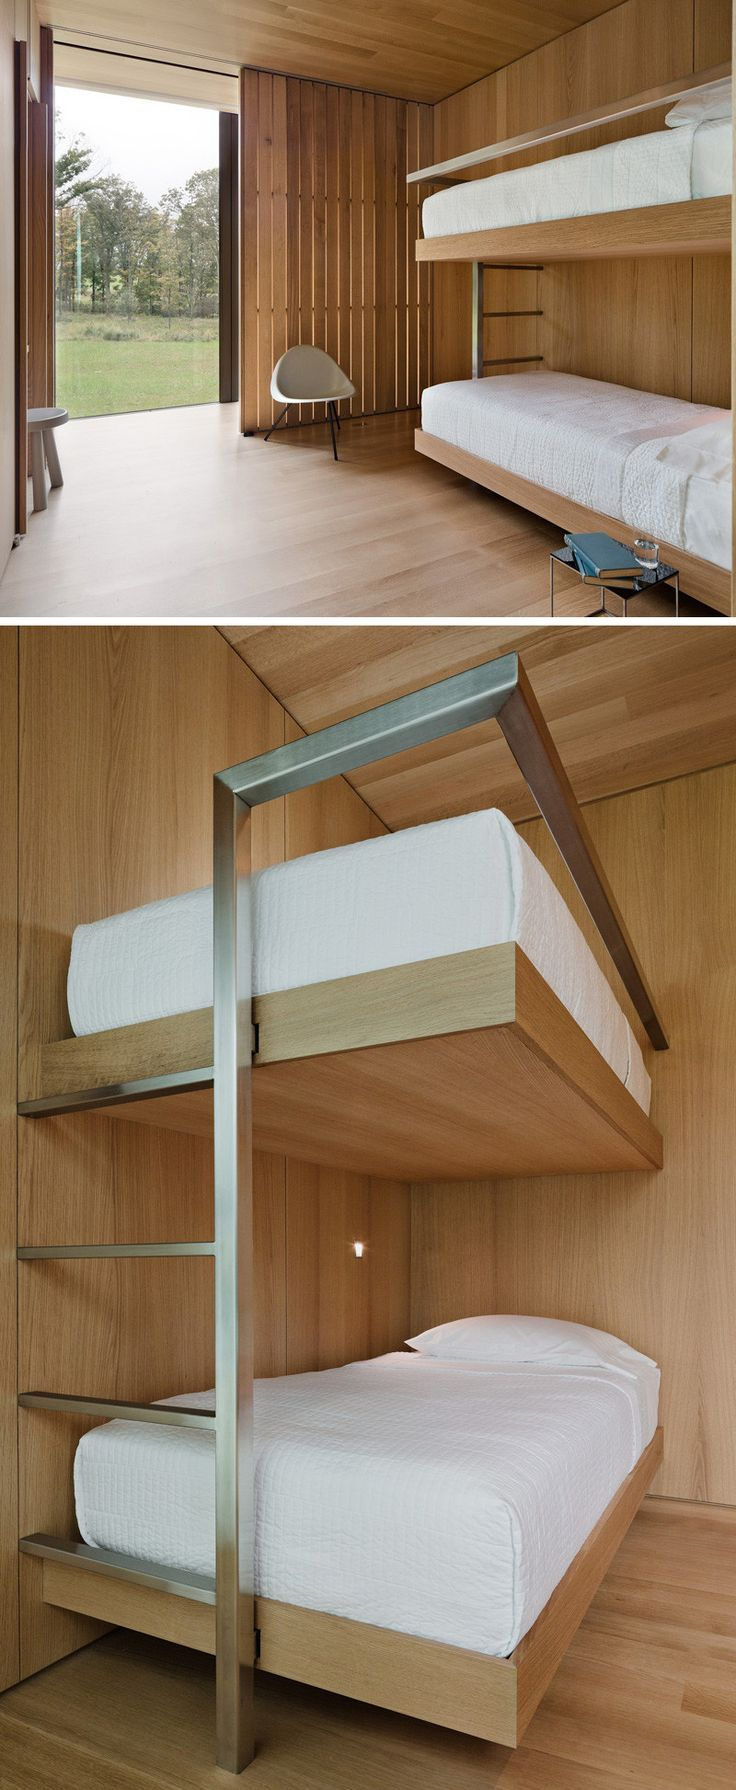 Modern bunk beds for adults - 17 Best Ideas About Adult Bunk Beds On Pinterest Modern Bed For Adults 324039c26ee59631392ad2bf957 Bunk Bed